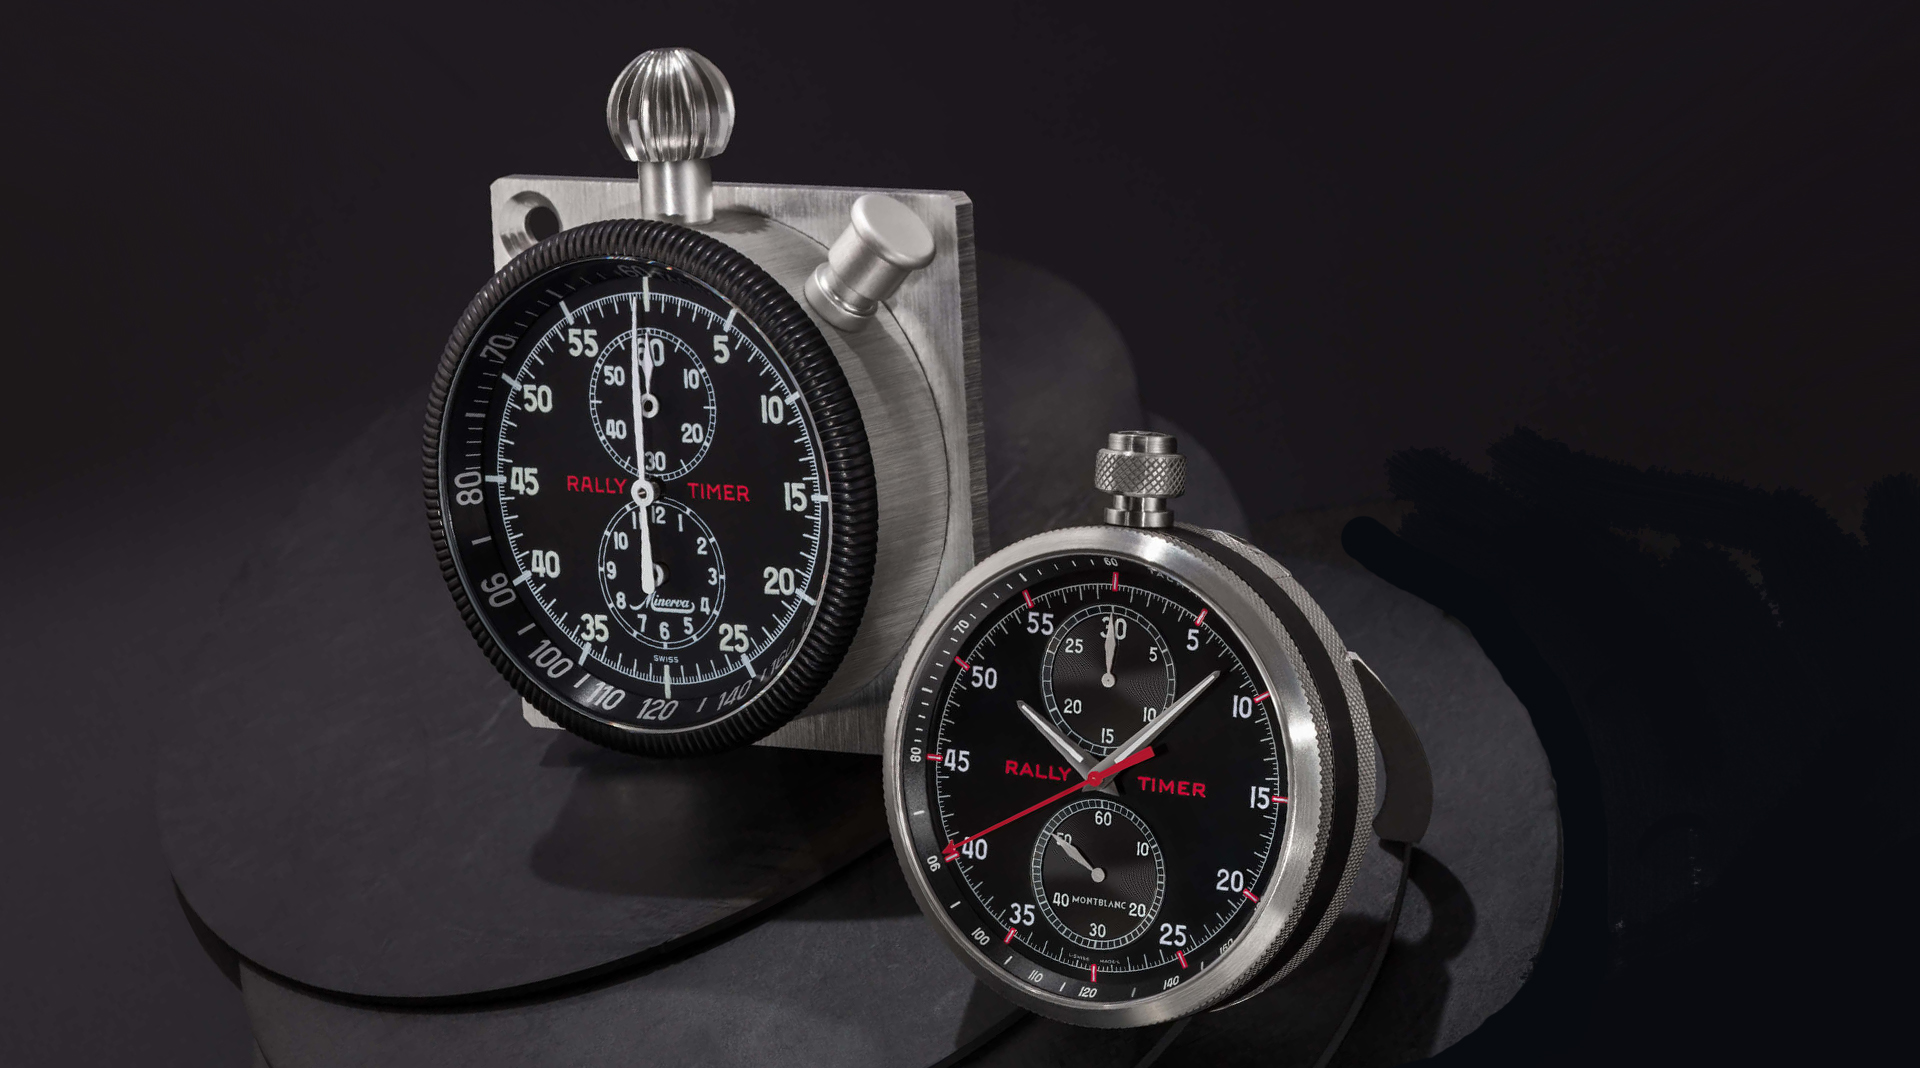 Montblanc TimeWalker Chronograph Rally Timer Counter Limited Edition side